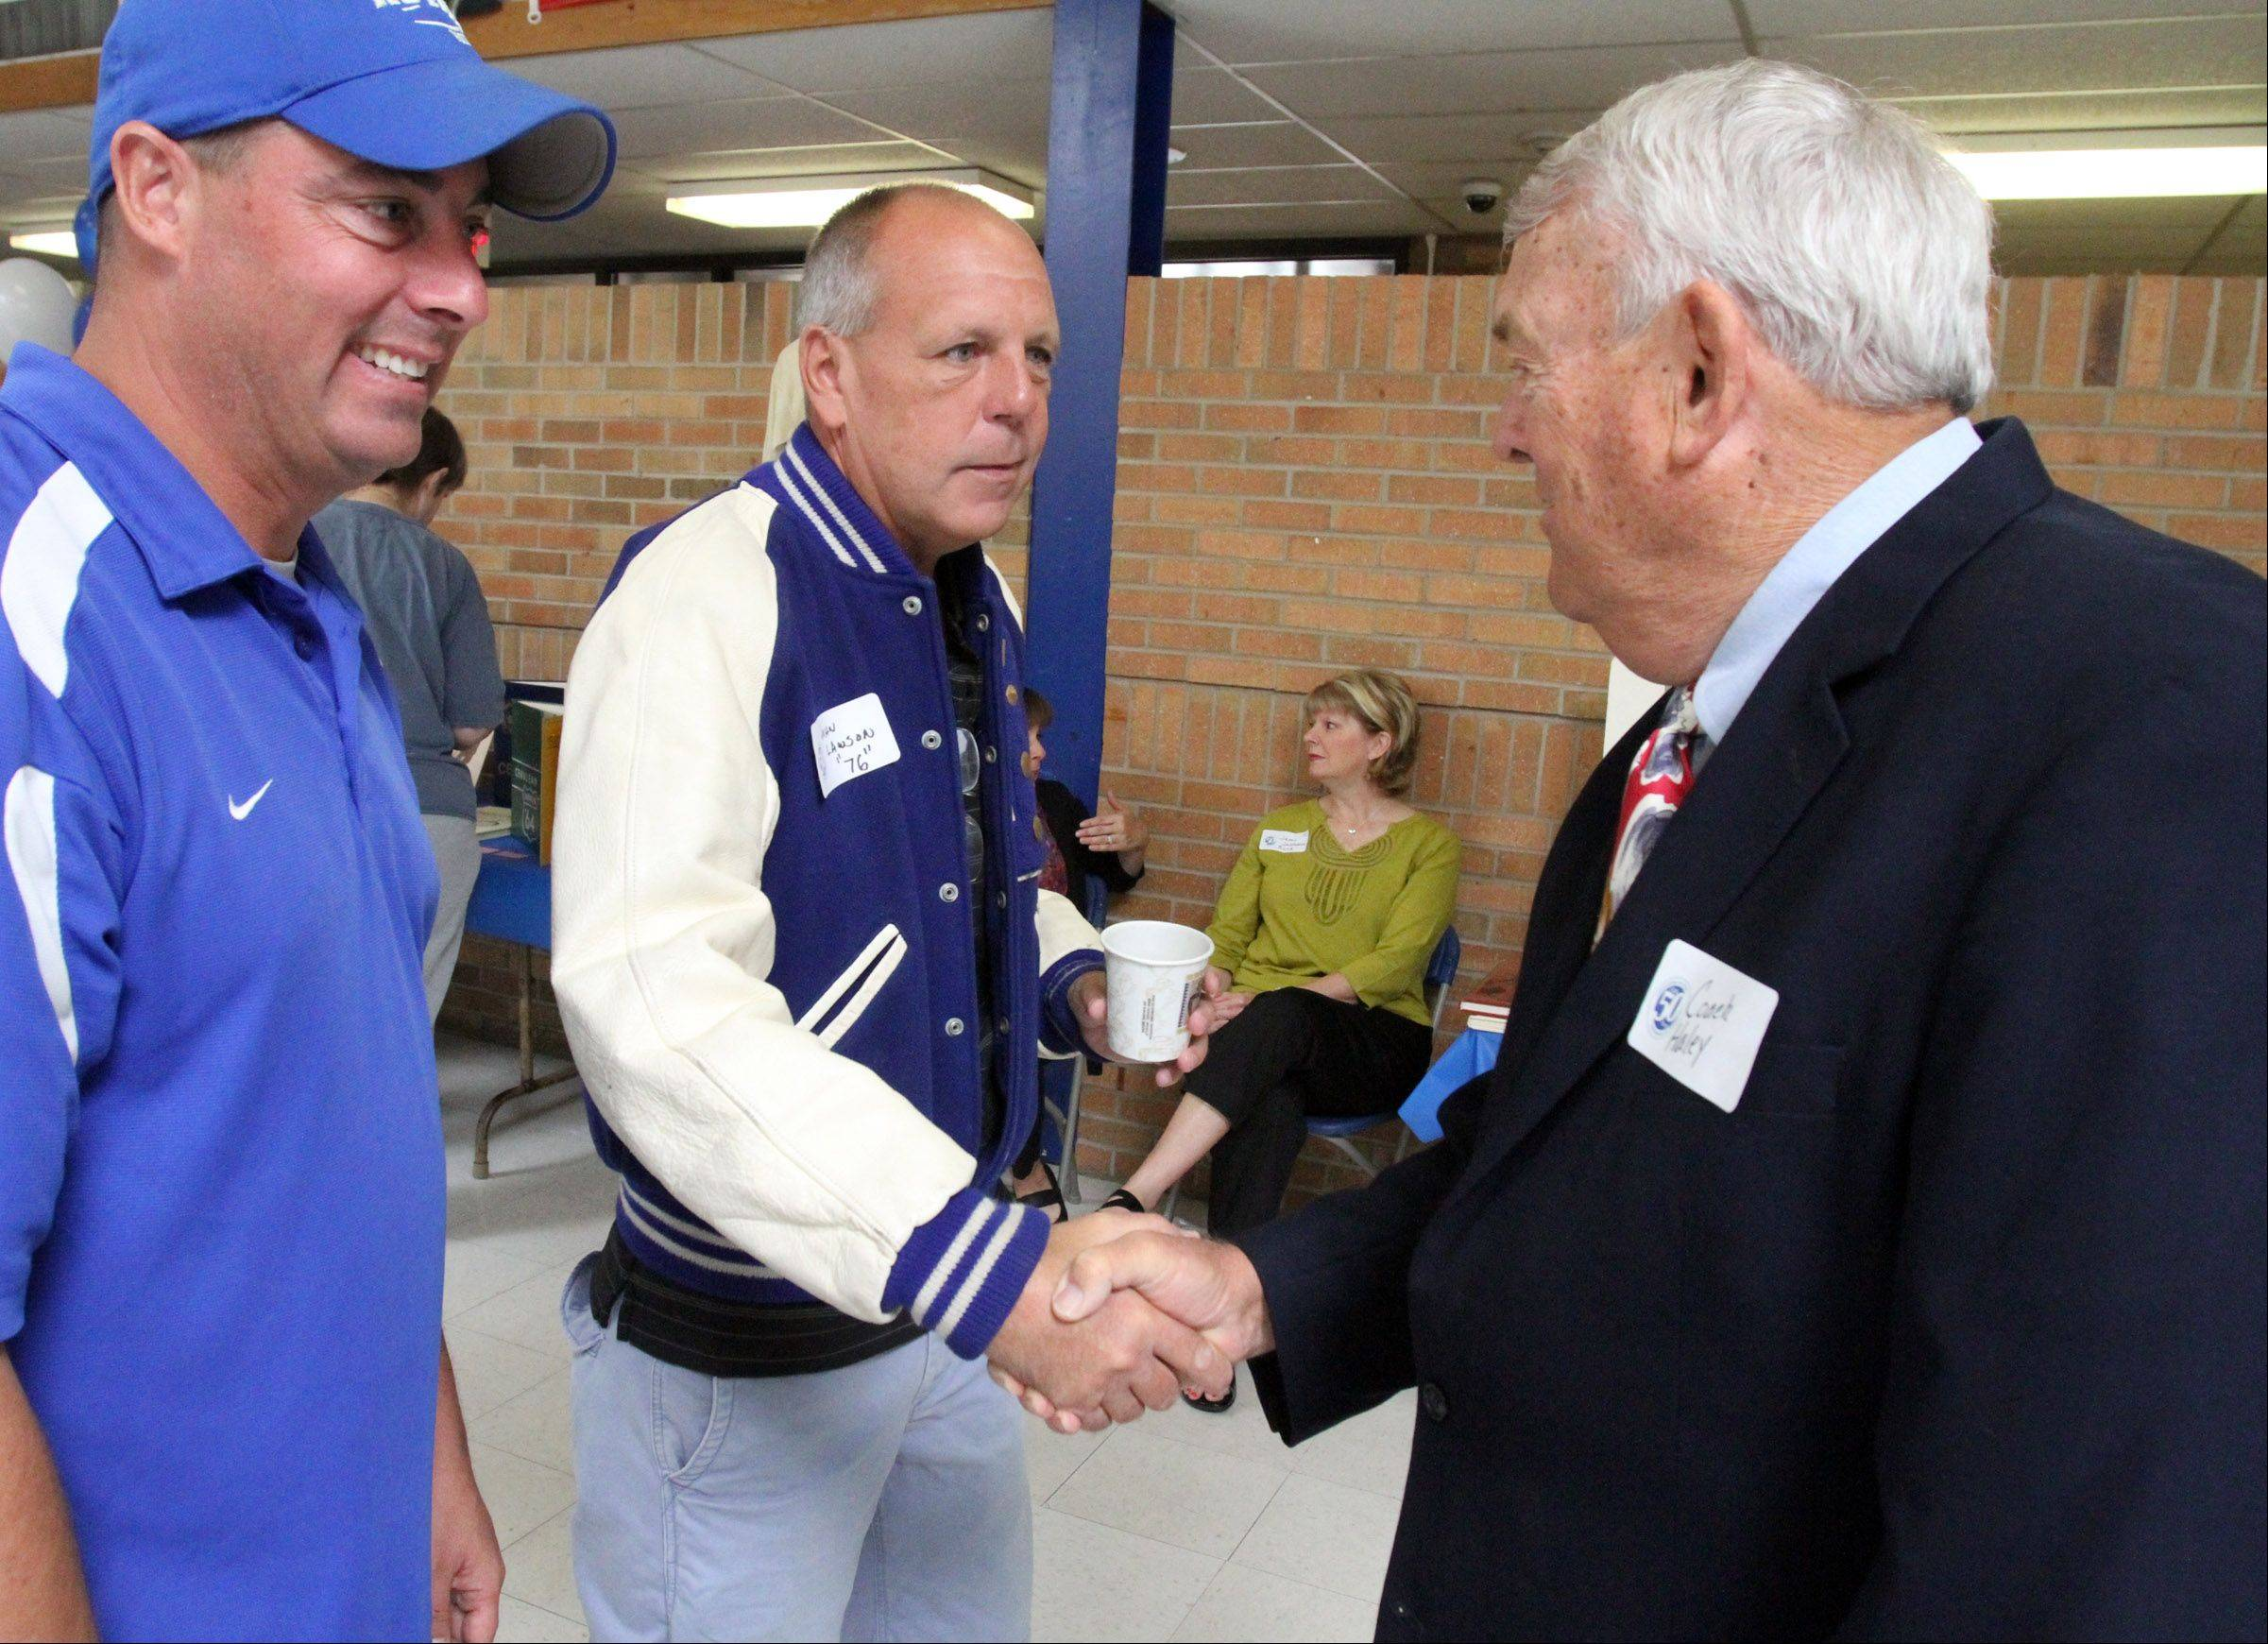 John Lawson, a 1976 graduate of Larkin High School in Elgin, center, greets coach Ray Haley, who was Larkin High School's first athletic director and longtime varsity football coach. With them is current varsity coach Mike Scianna, left. The group took part in Larkin's 50th anniversary open house on Saturday.